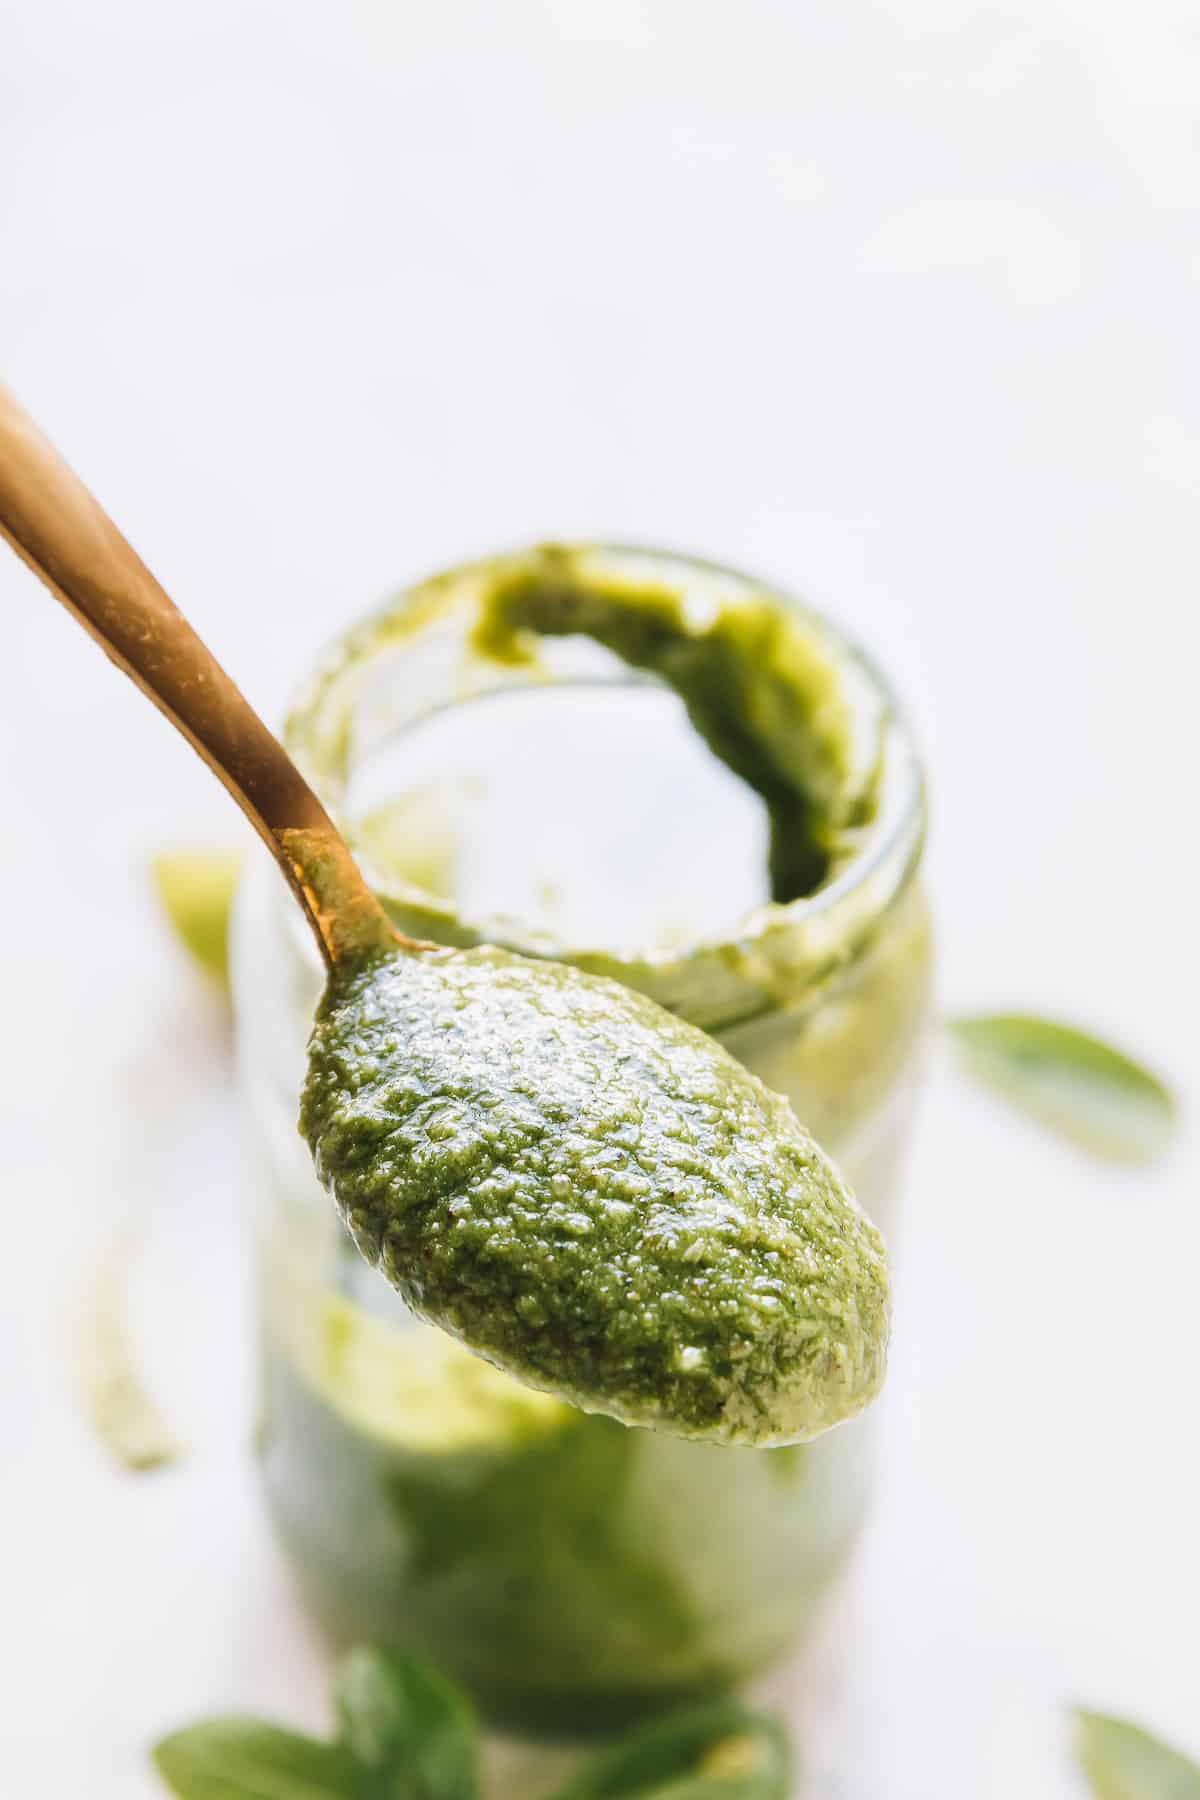 A gold spoon with basil pesto.